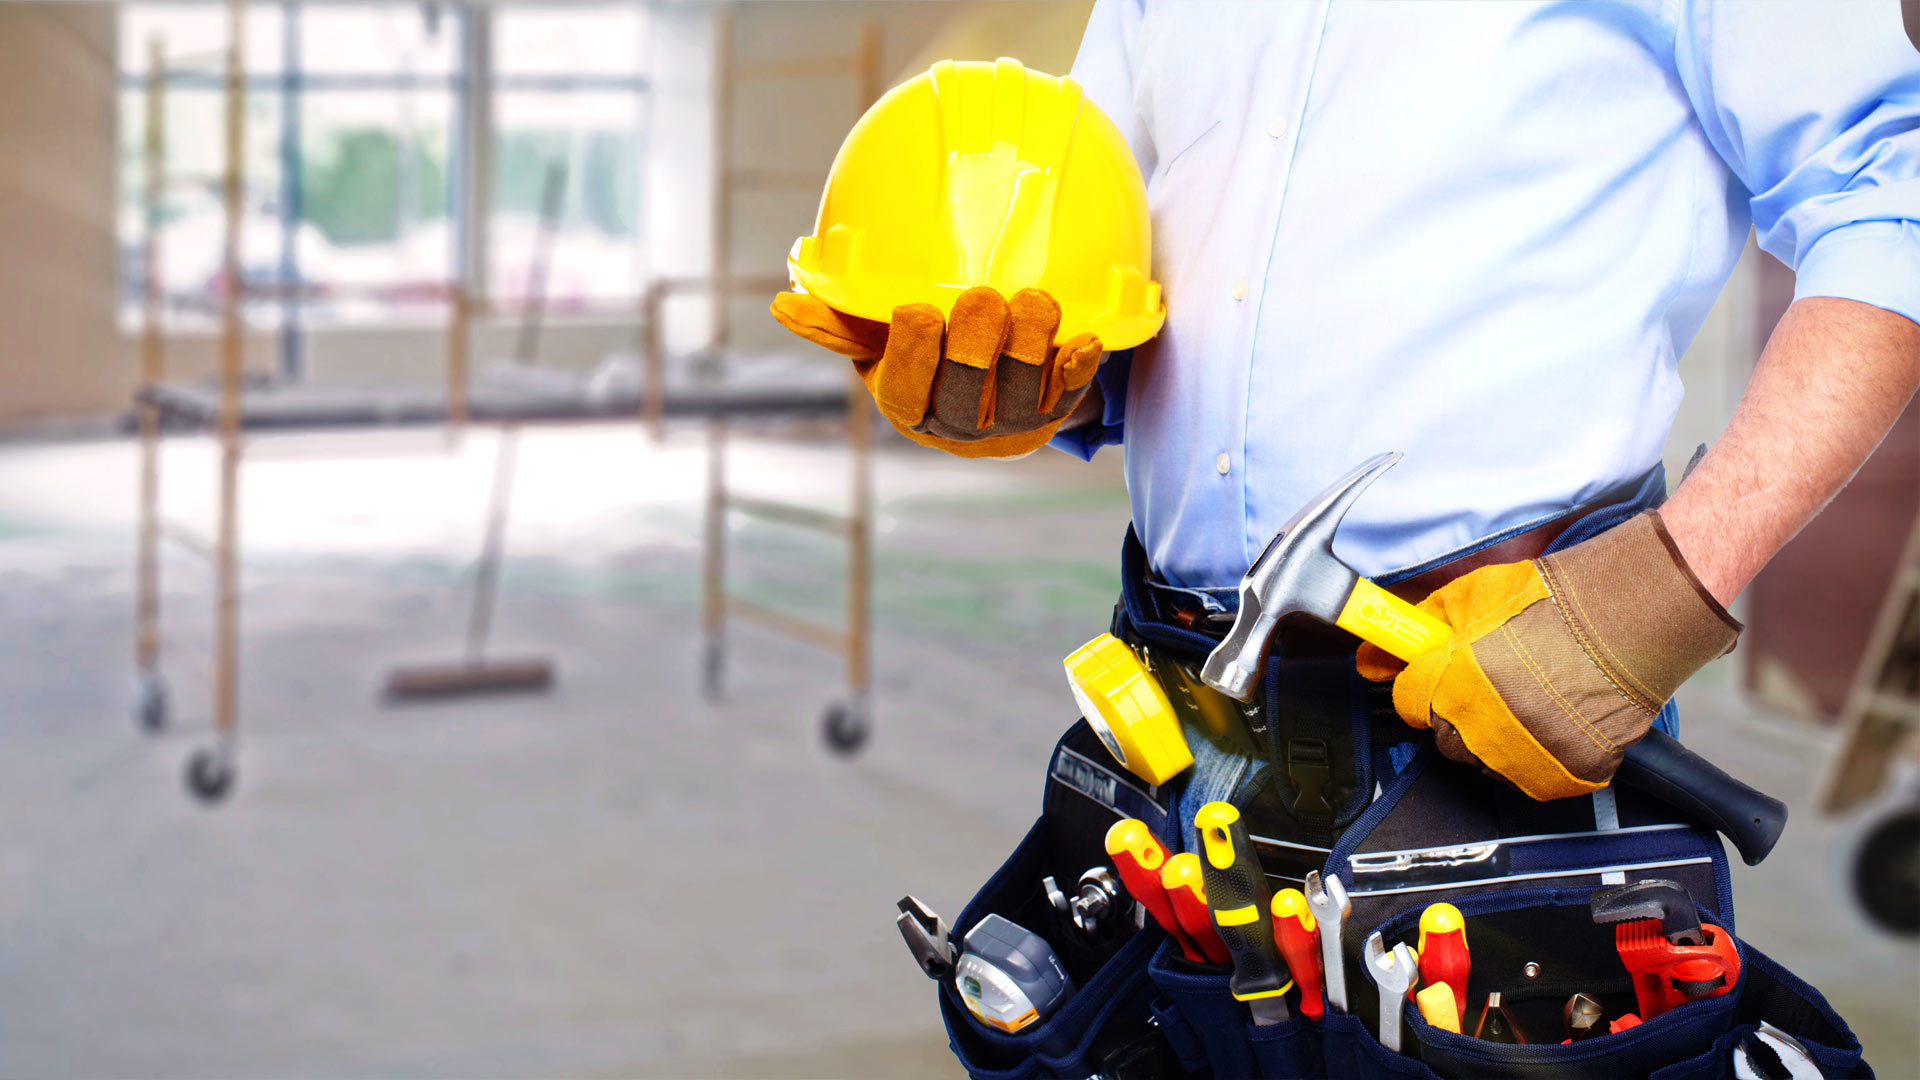 Handyman Service In Columbia, MD